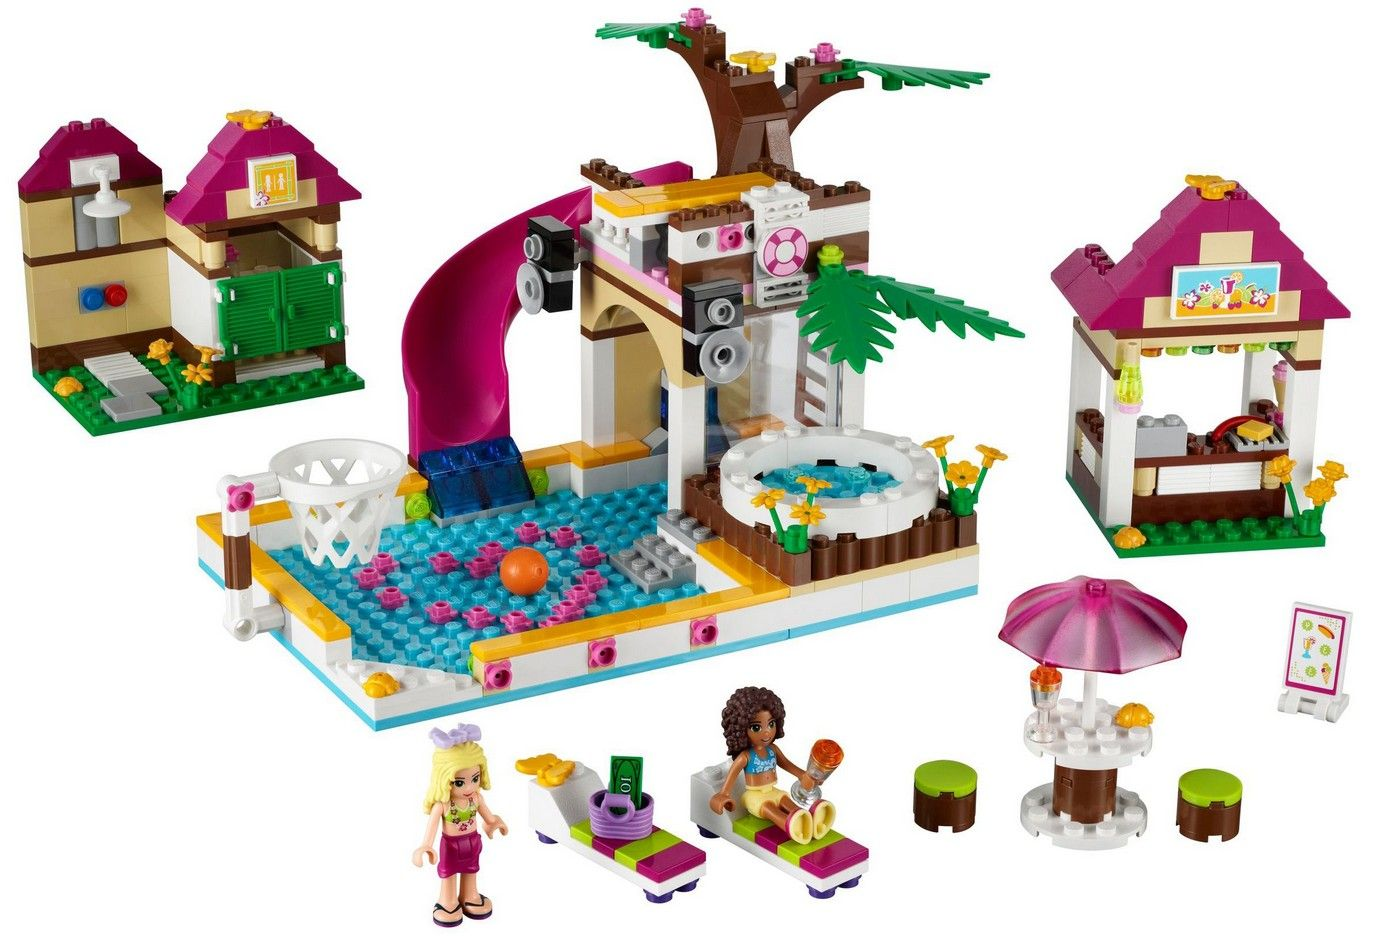 Lego Friends La Piscina Lego 41008 Friends Heartlake City Pool I Brick City